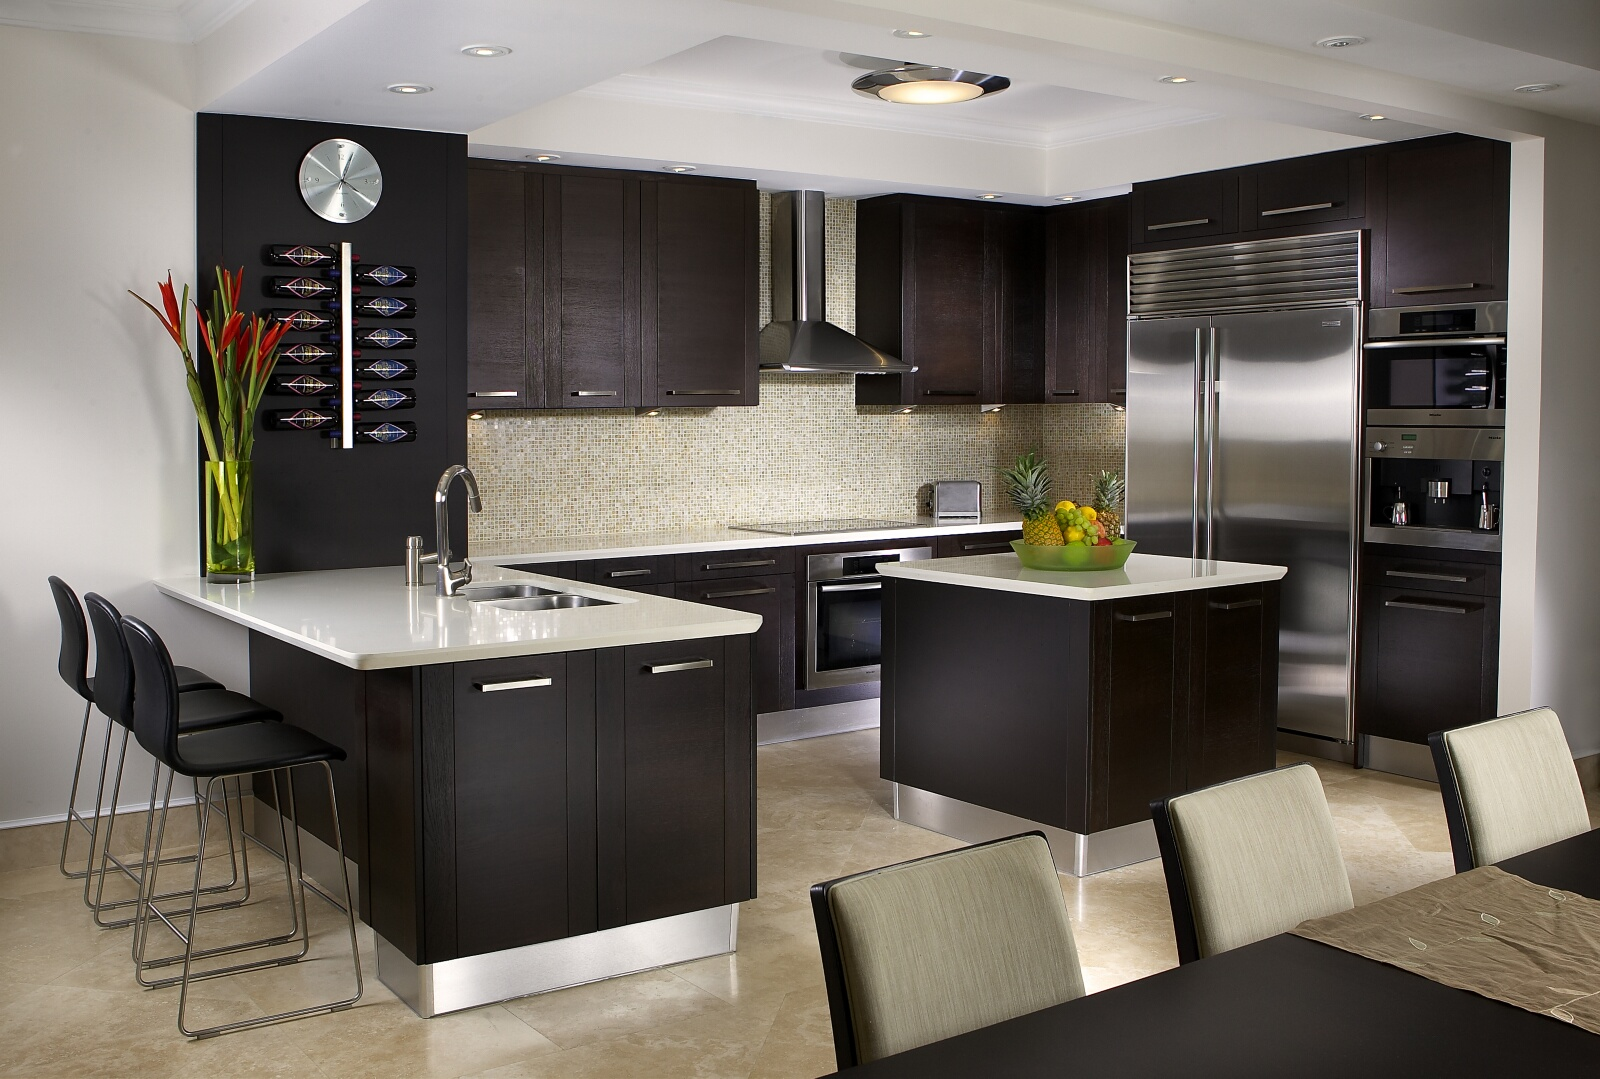 Interior Design Kitchen  Ideal Vistalist Co